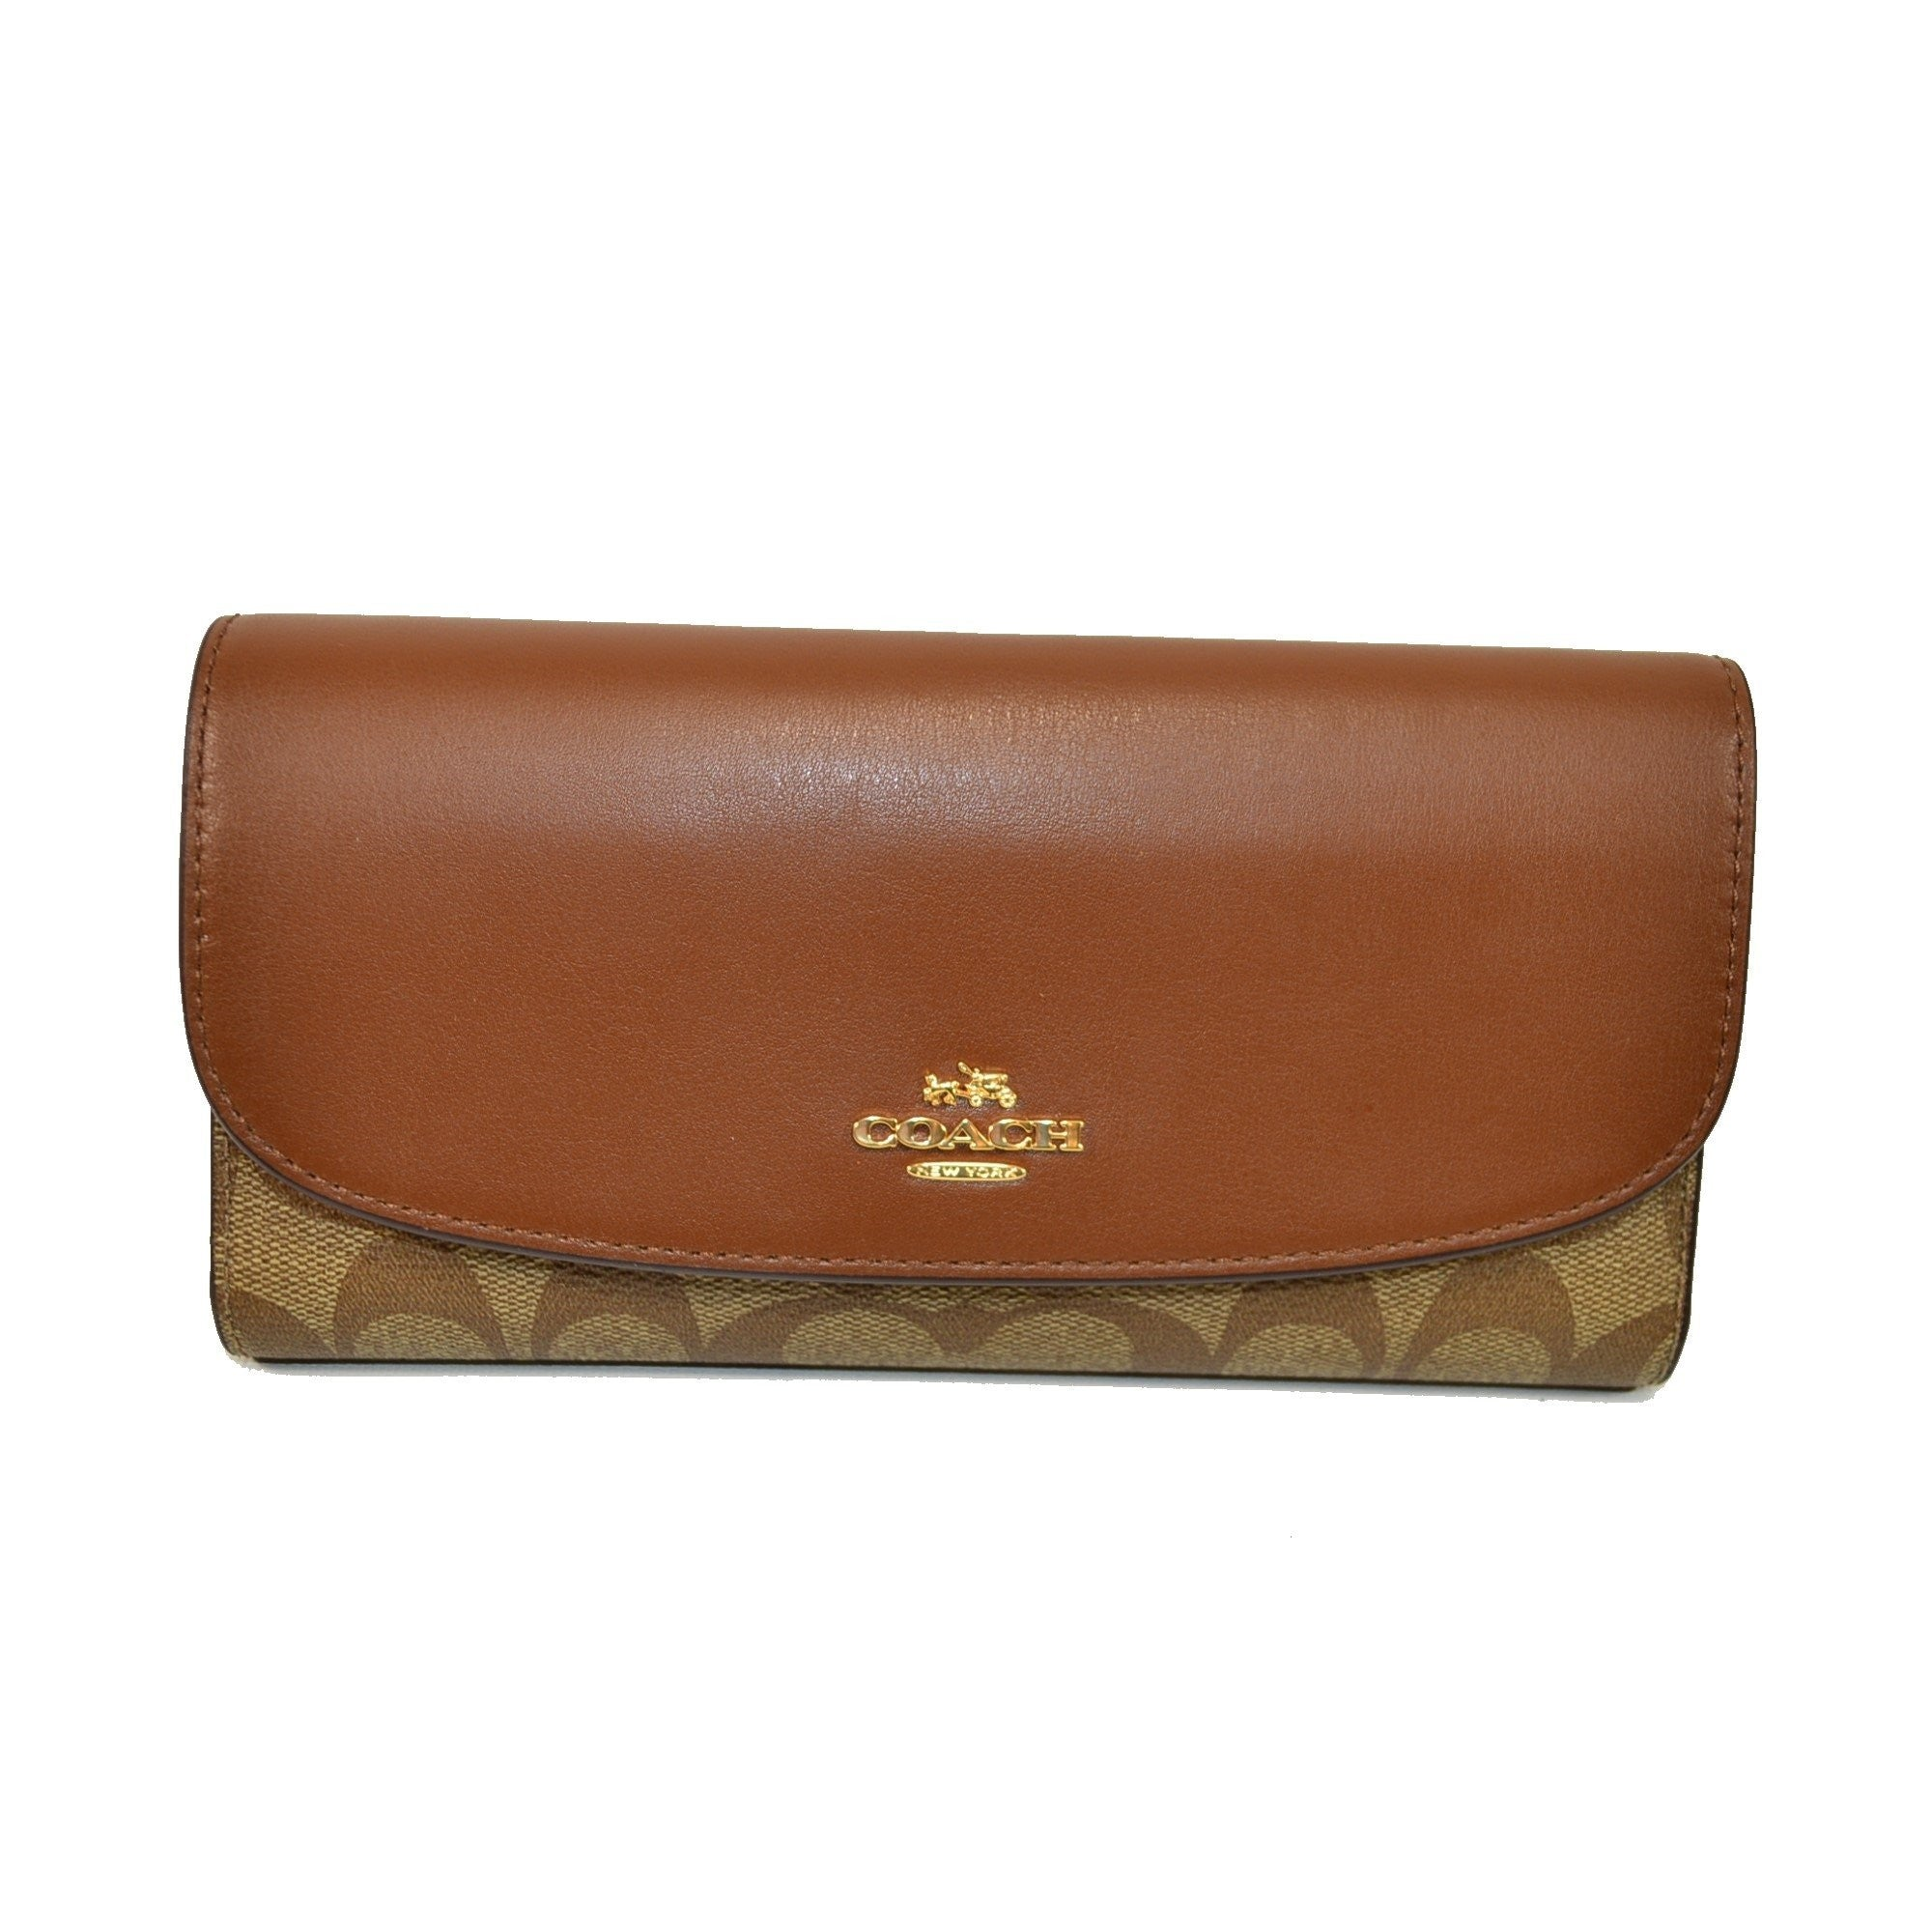 6d0b36f6bc0af Checkbook Wallet In Signature (Coach F57319) - Watchcove